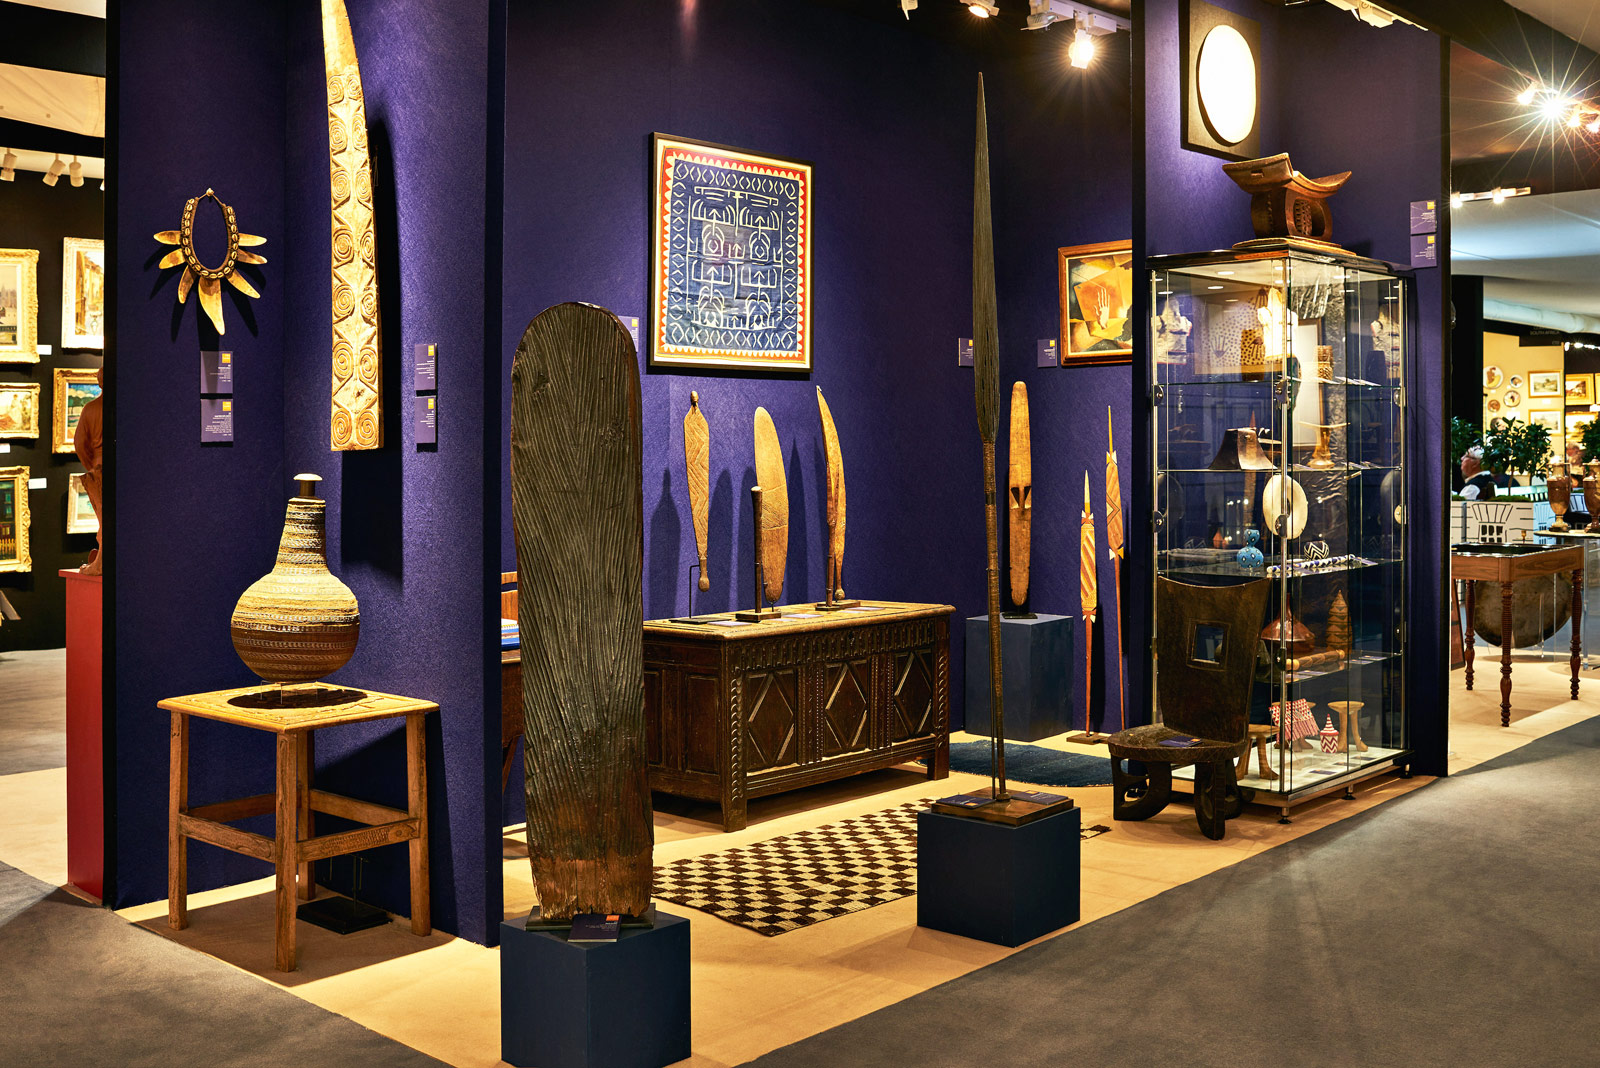 The 2016 LAPADA Arts And Antiques Fair To Open In London